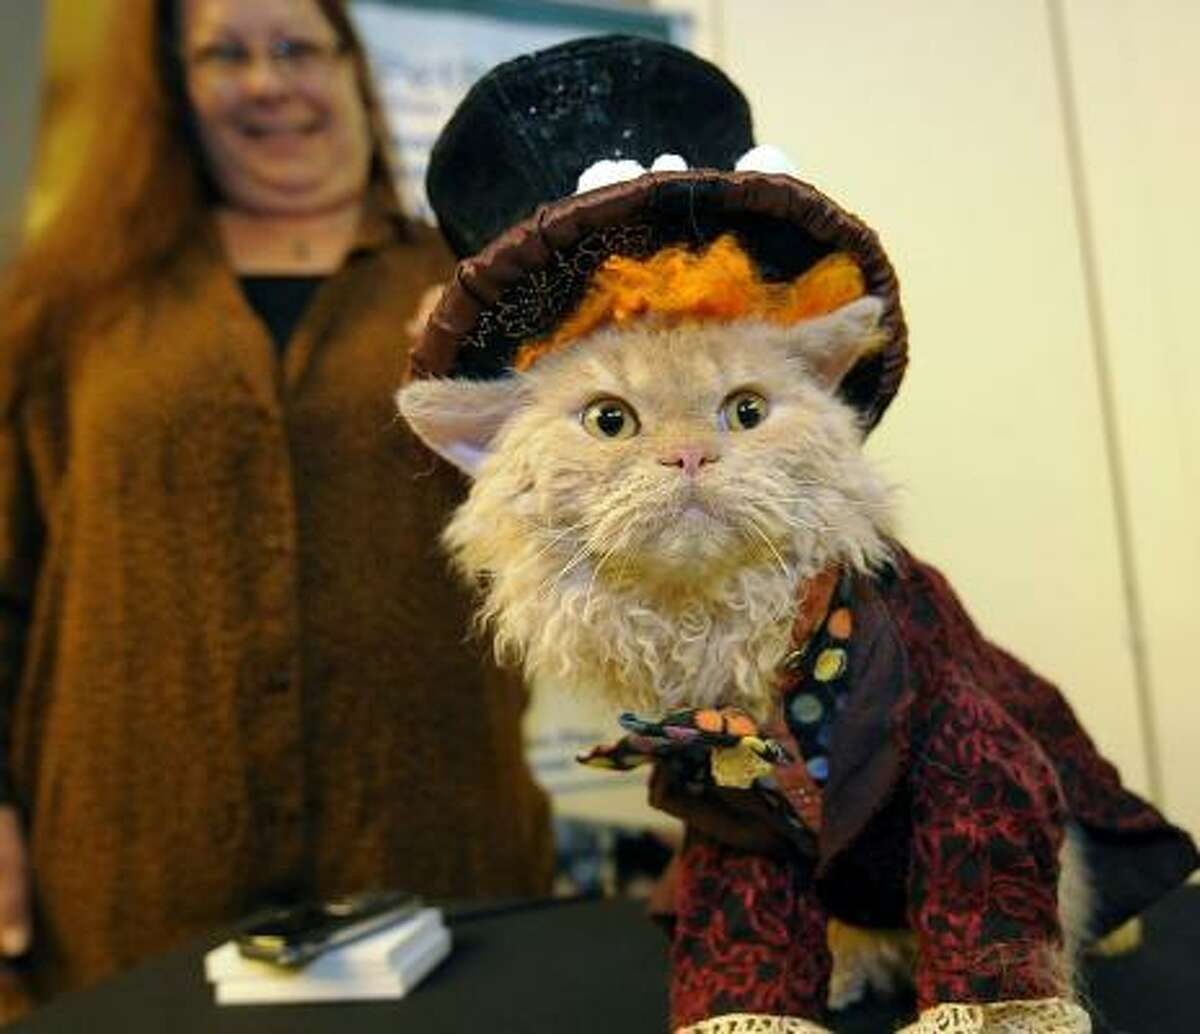 Starting off the show: an American Curl Cat dressed as a magician.